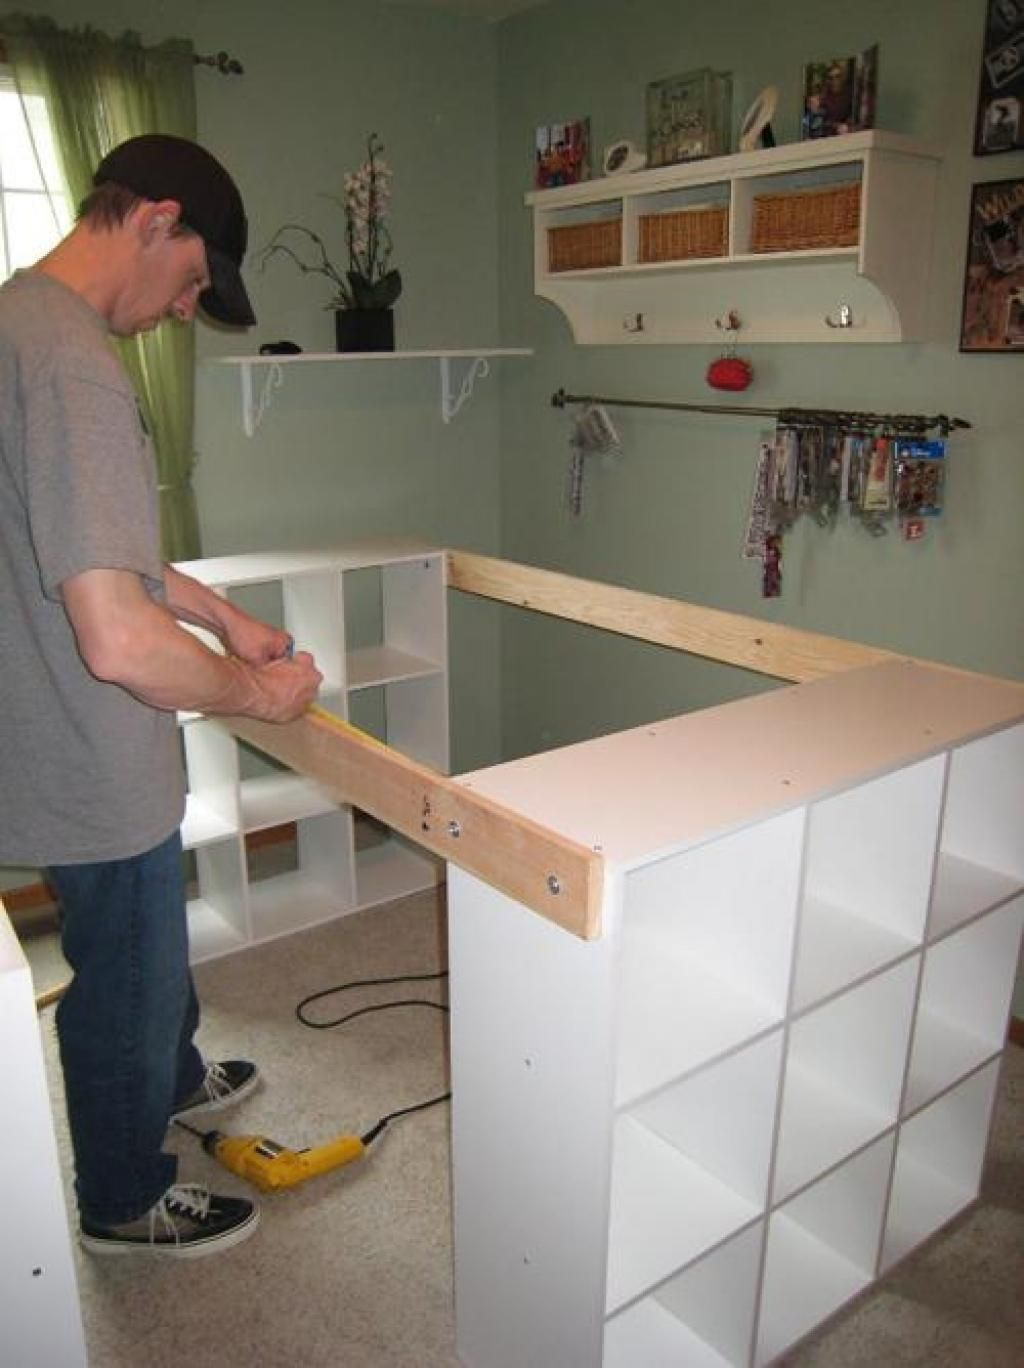 Home daycare design-ideen he links  ikea shelves together to create something essential in